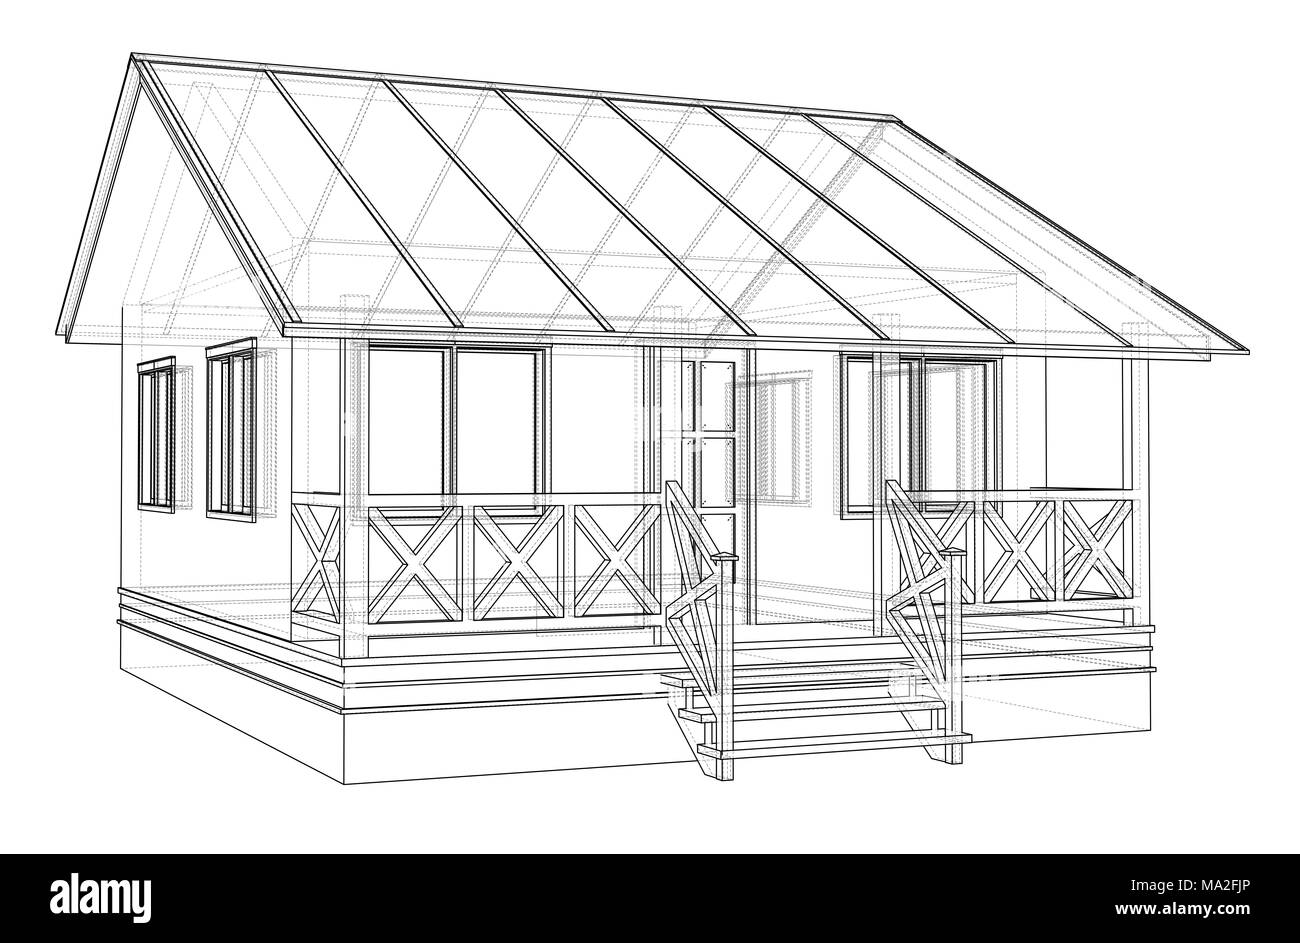 Private house sketch. 3d illustration. Wire-frame style Stock Photo ...